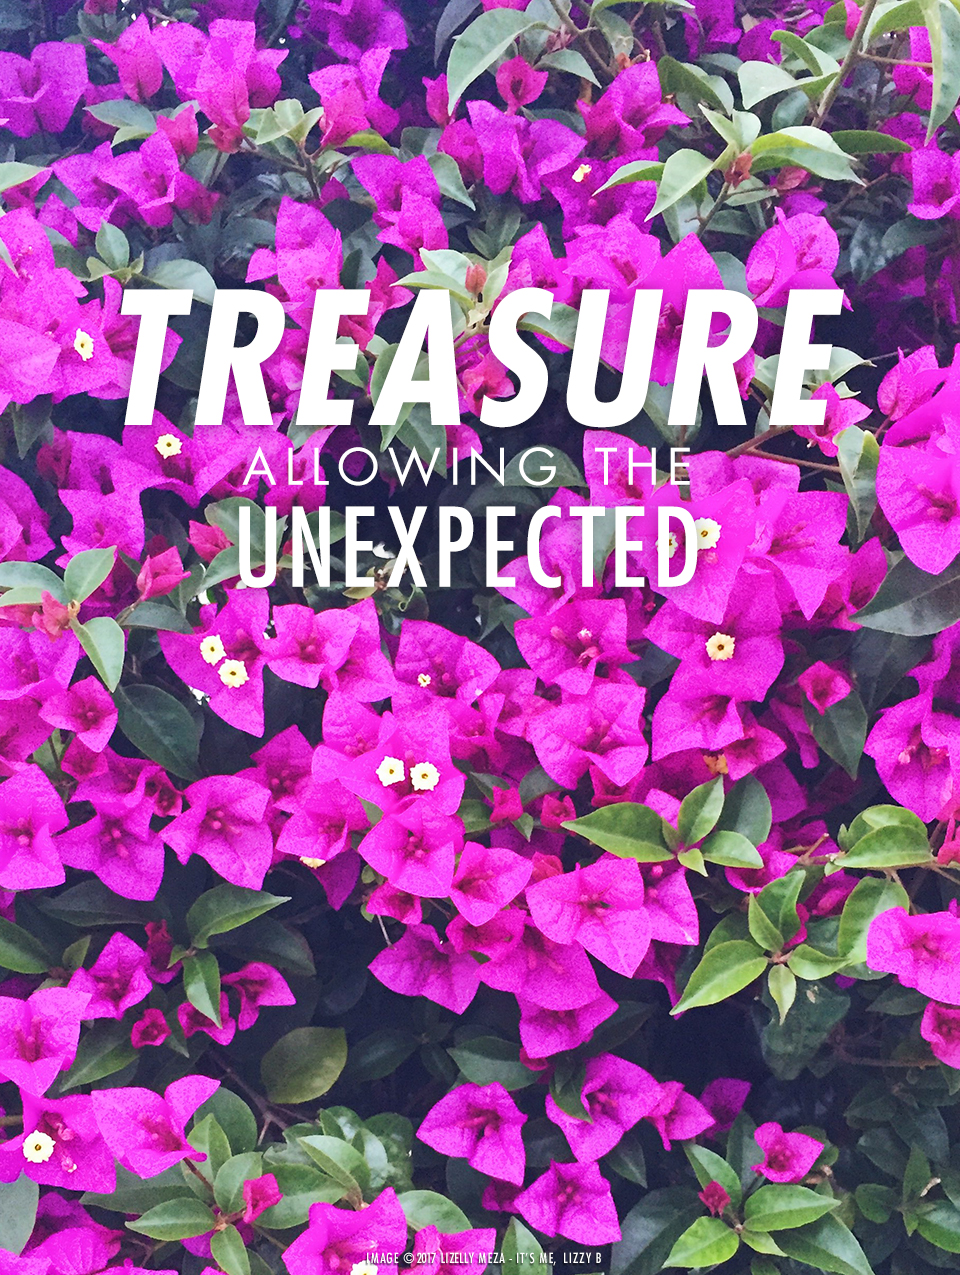 Treasure—Allowing the Unexpected// It's Me, Lizzy B - Musings on Life, Business, & The Pursuit of Curiosity // Personal blog of Lizelly Meza